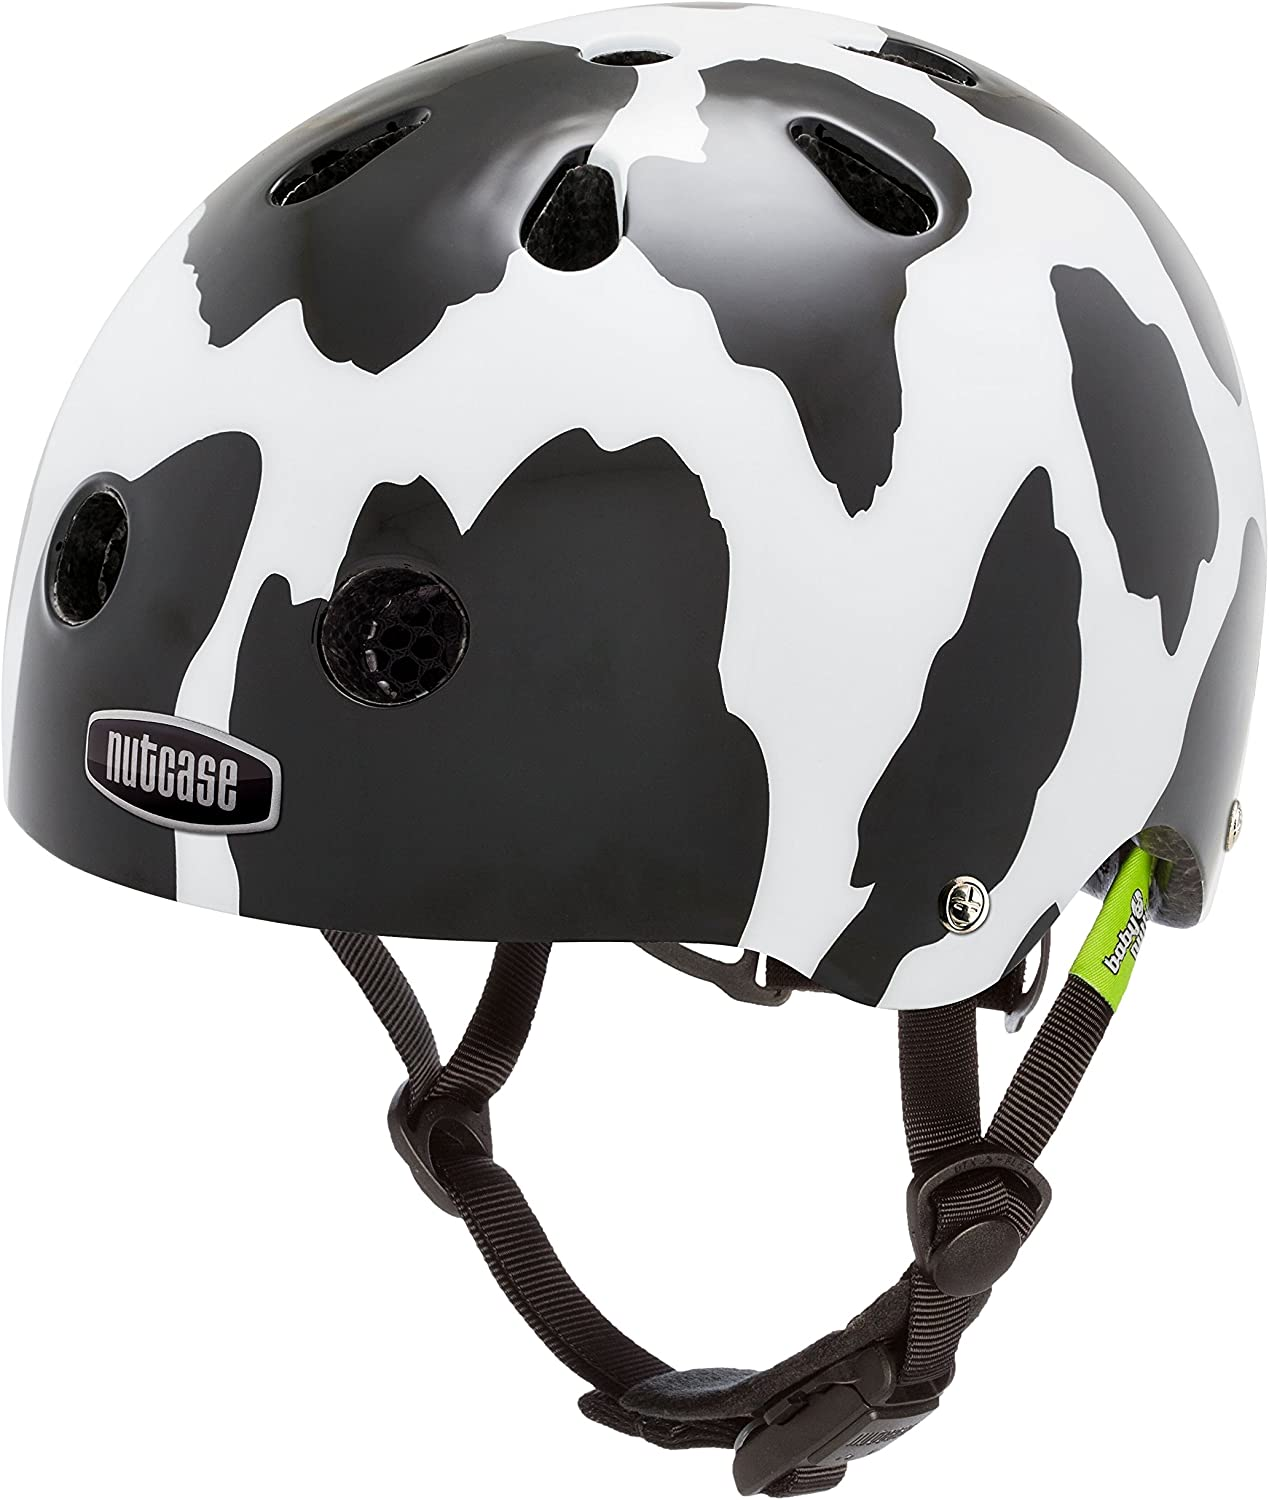 Nutcase – Baby Nutty Bike Helmet for Babies and Toddlers, Moo